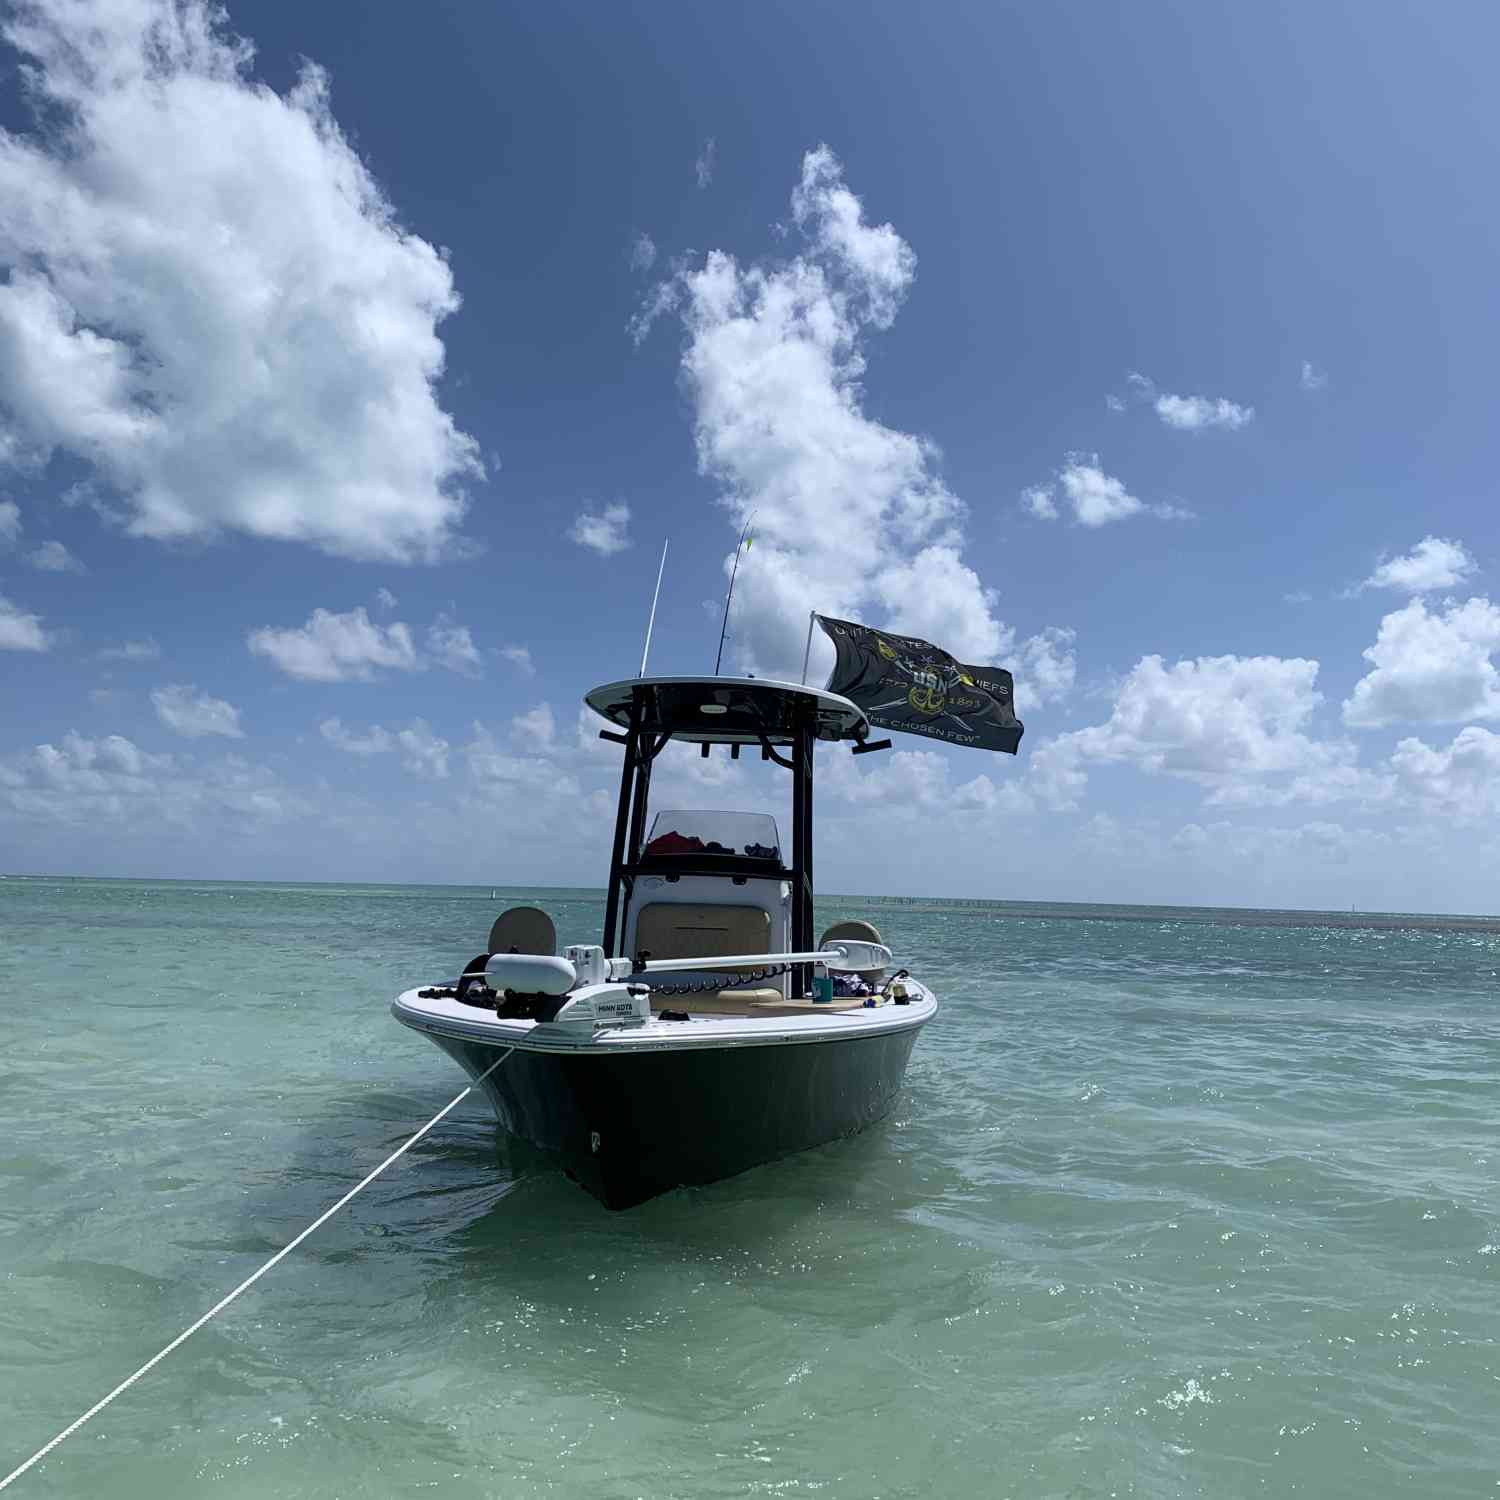 When it's small craft advisory in the Florida Keys you hit the sand bar in Islamorada.